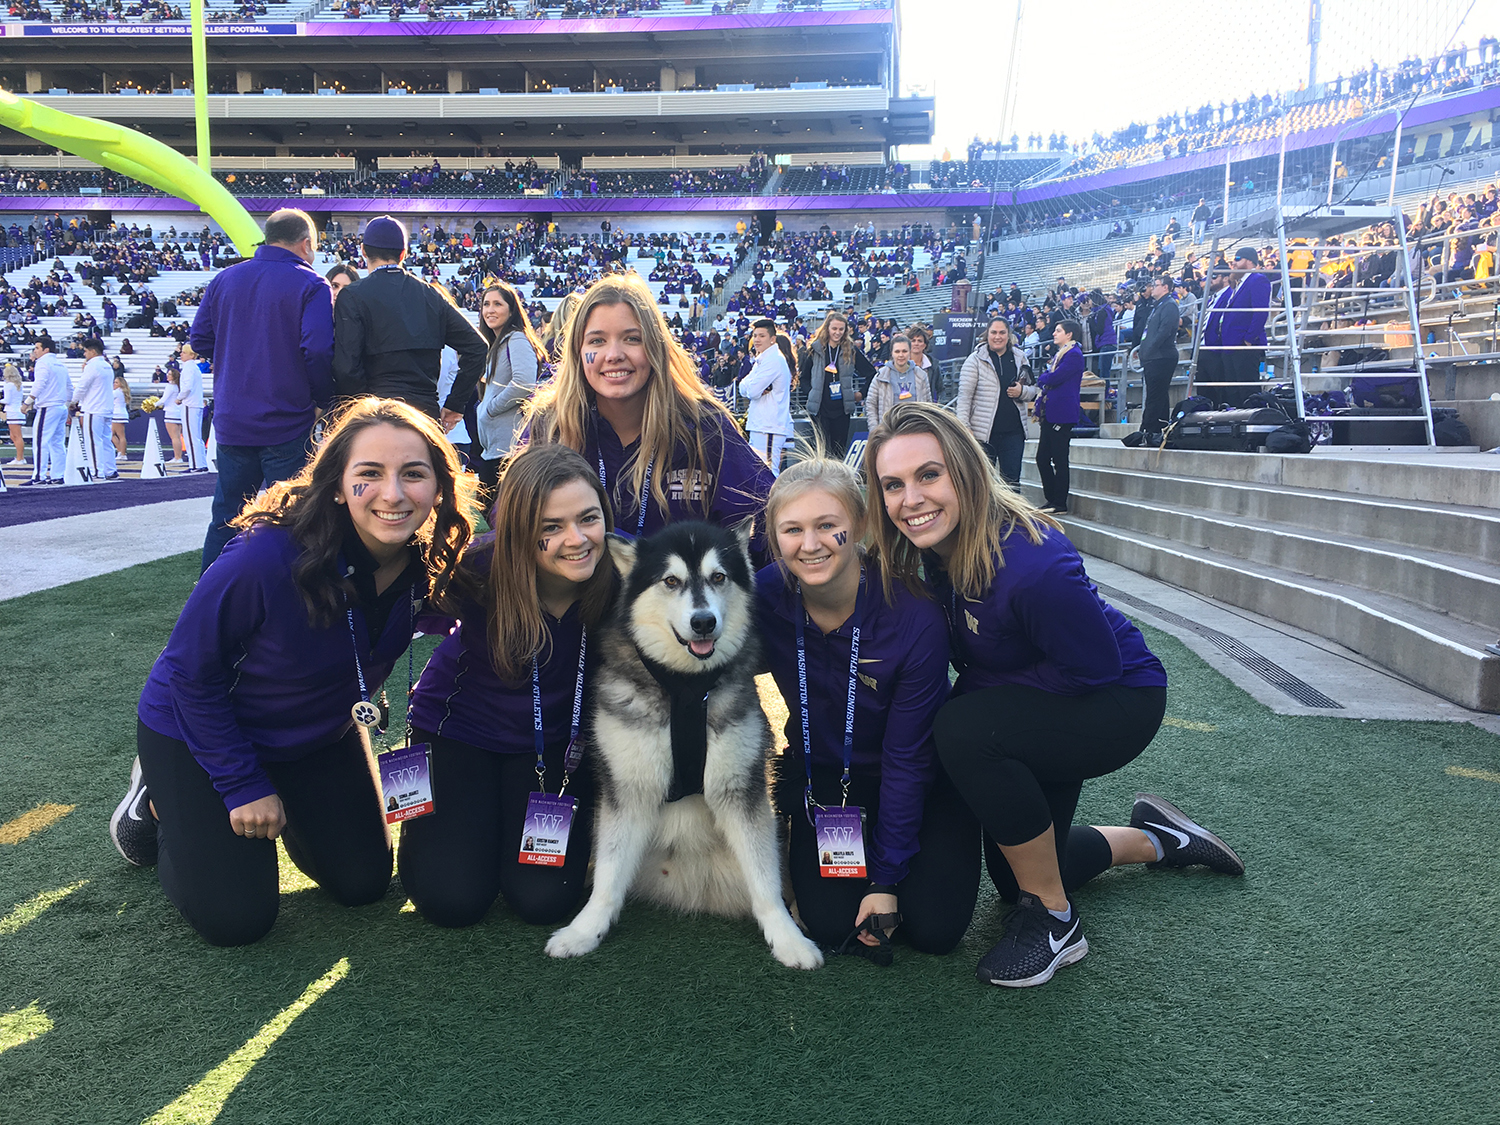 We are so saddened to learn of the passing of Dubs I, the retired goodest mascot of the University of Washington. You gave so many fans, reporters, players and families so much love - we miss you, but we just know you're in DaWg heaven. (Image: KOMO News)